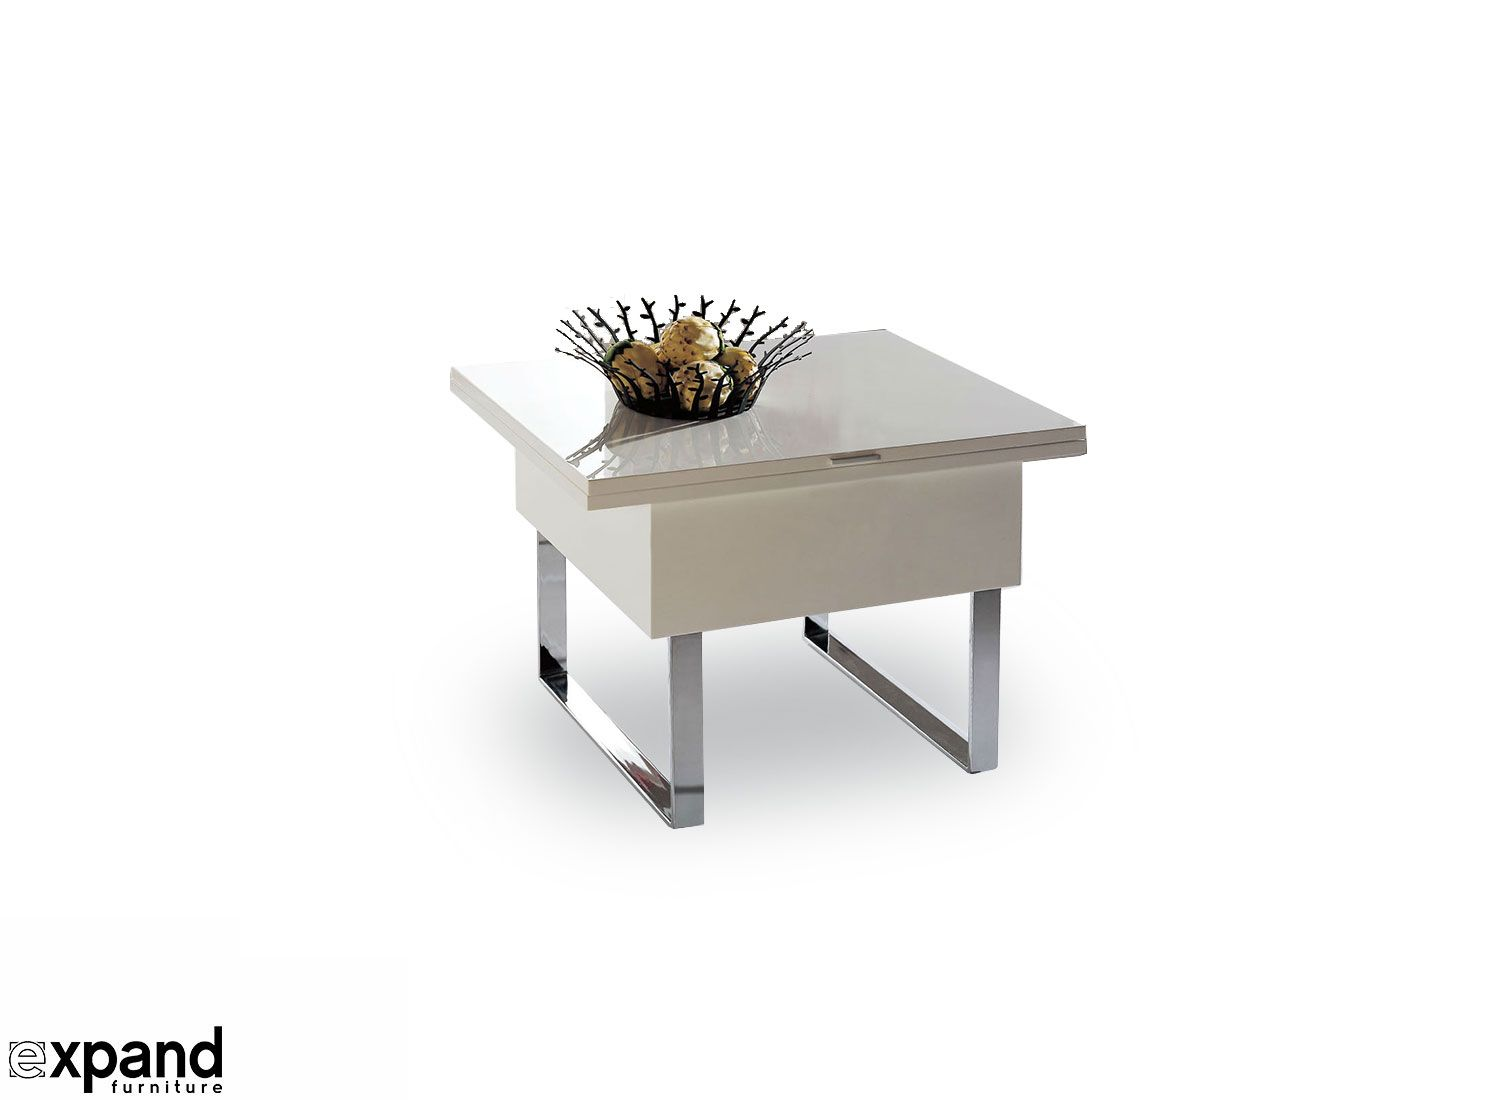 Elevate E Saving Table Furniture Gadgets